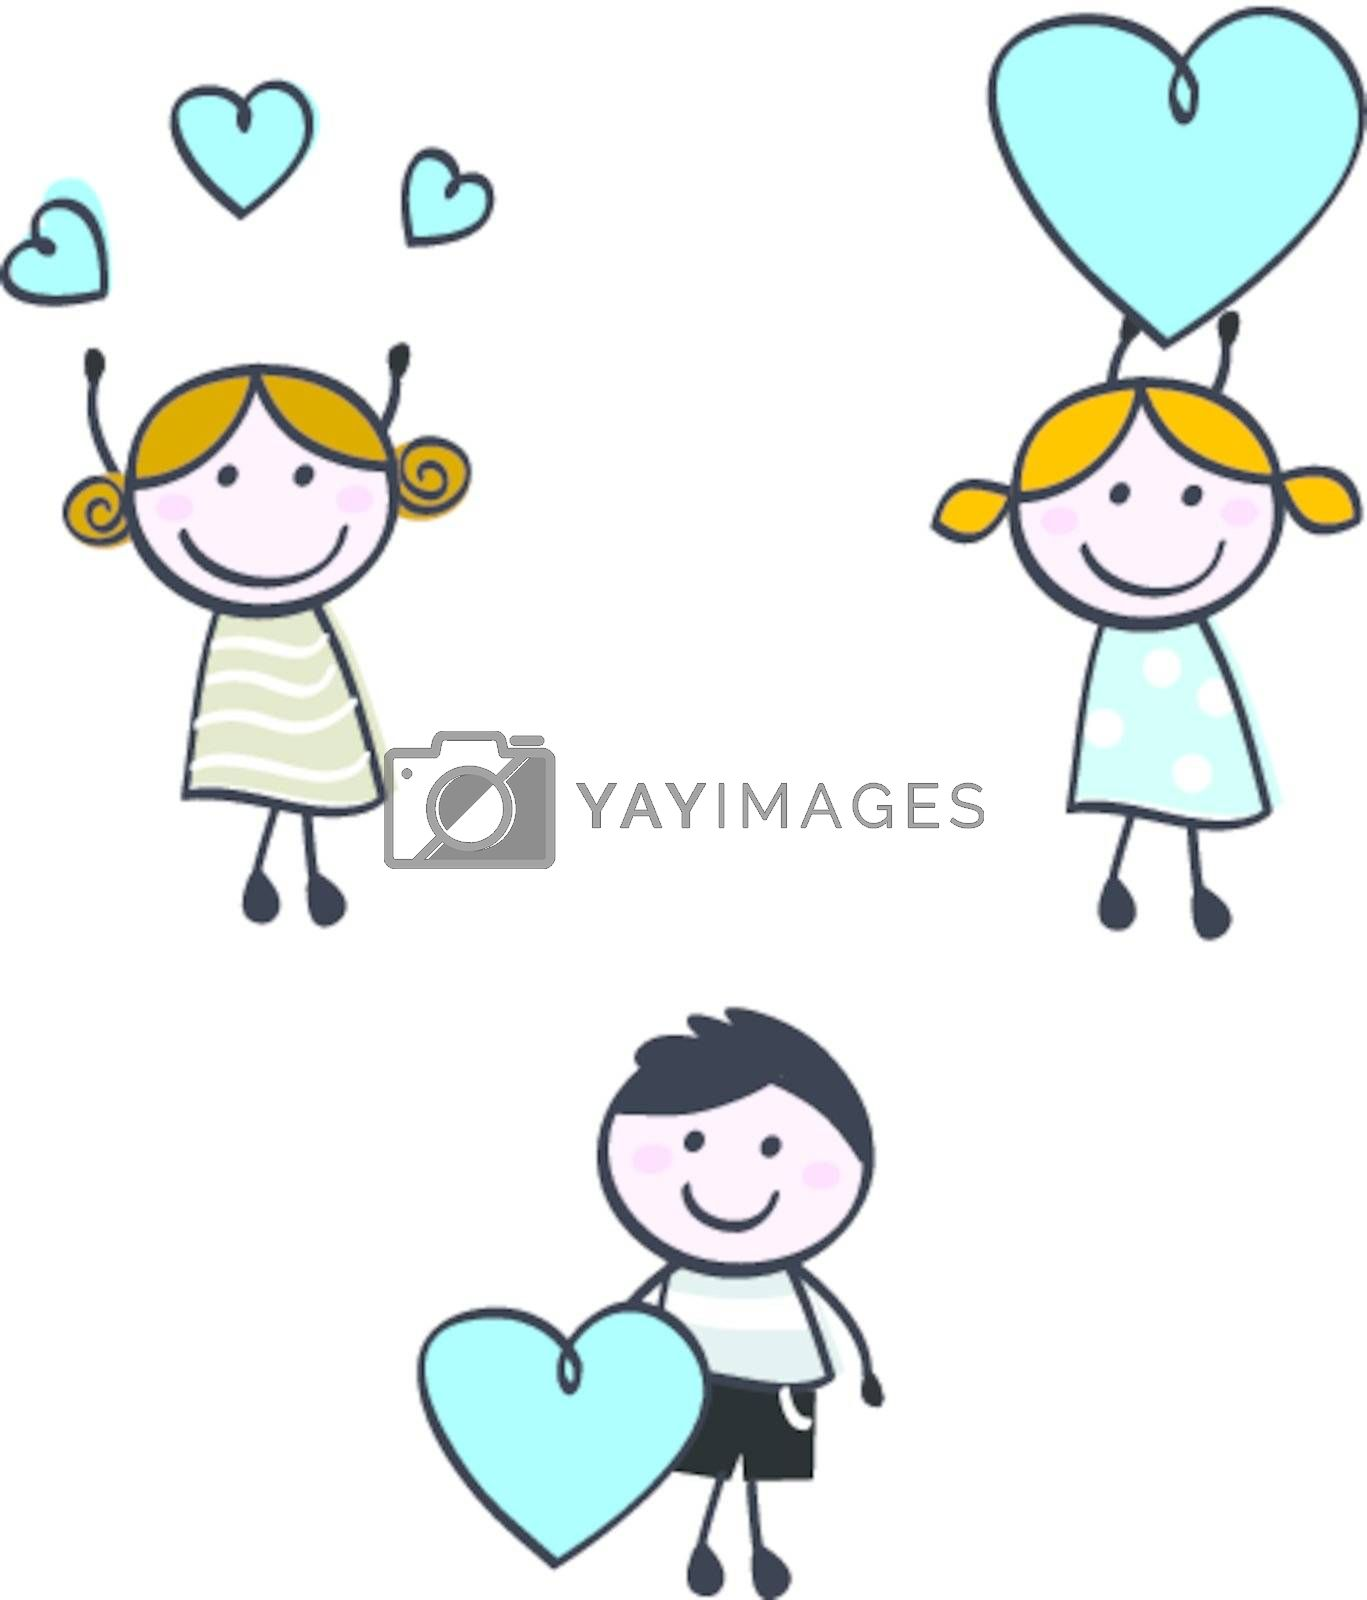 Stick doodle kids figures with heart banners by Lordalea